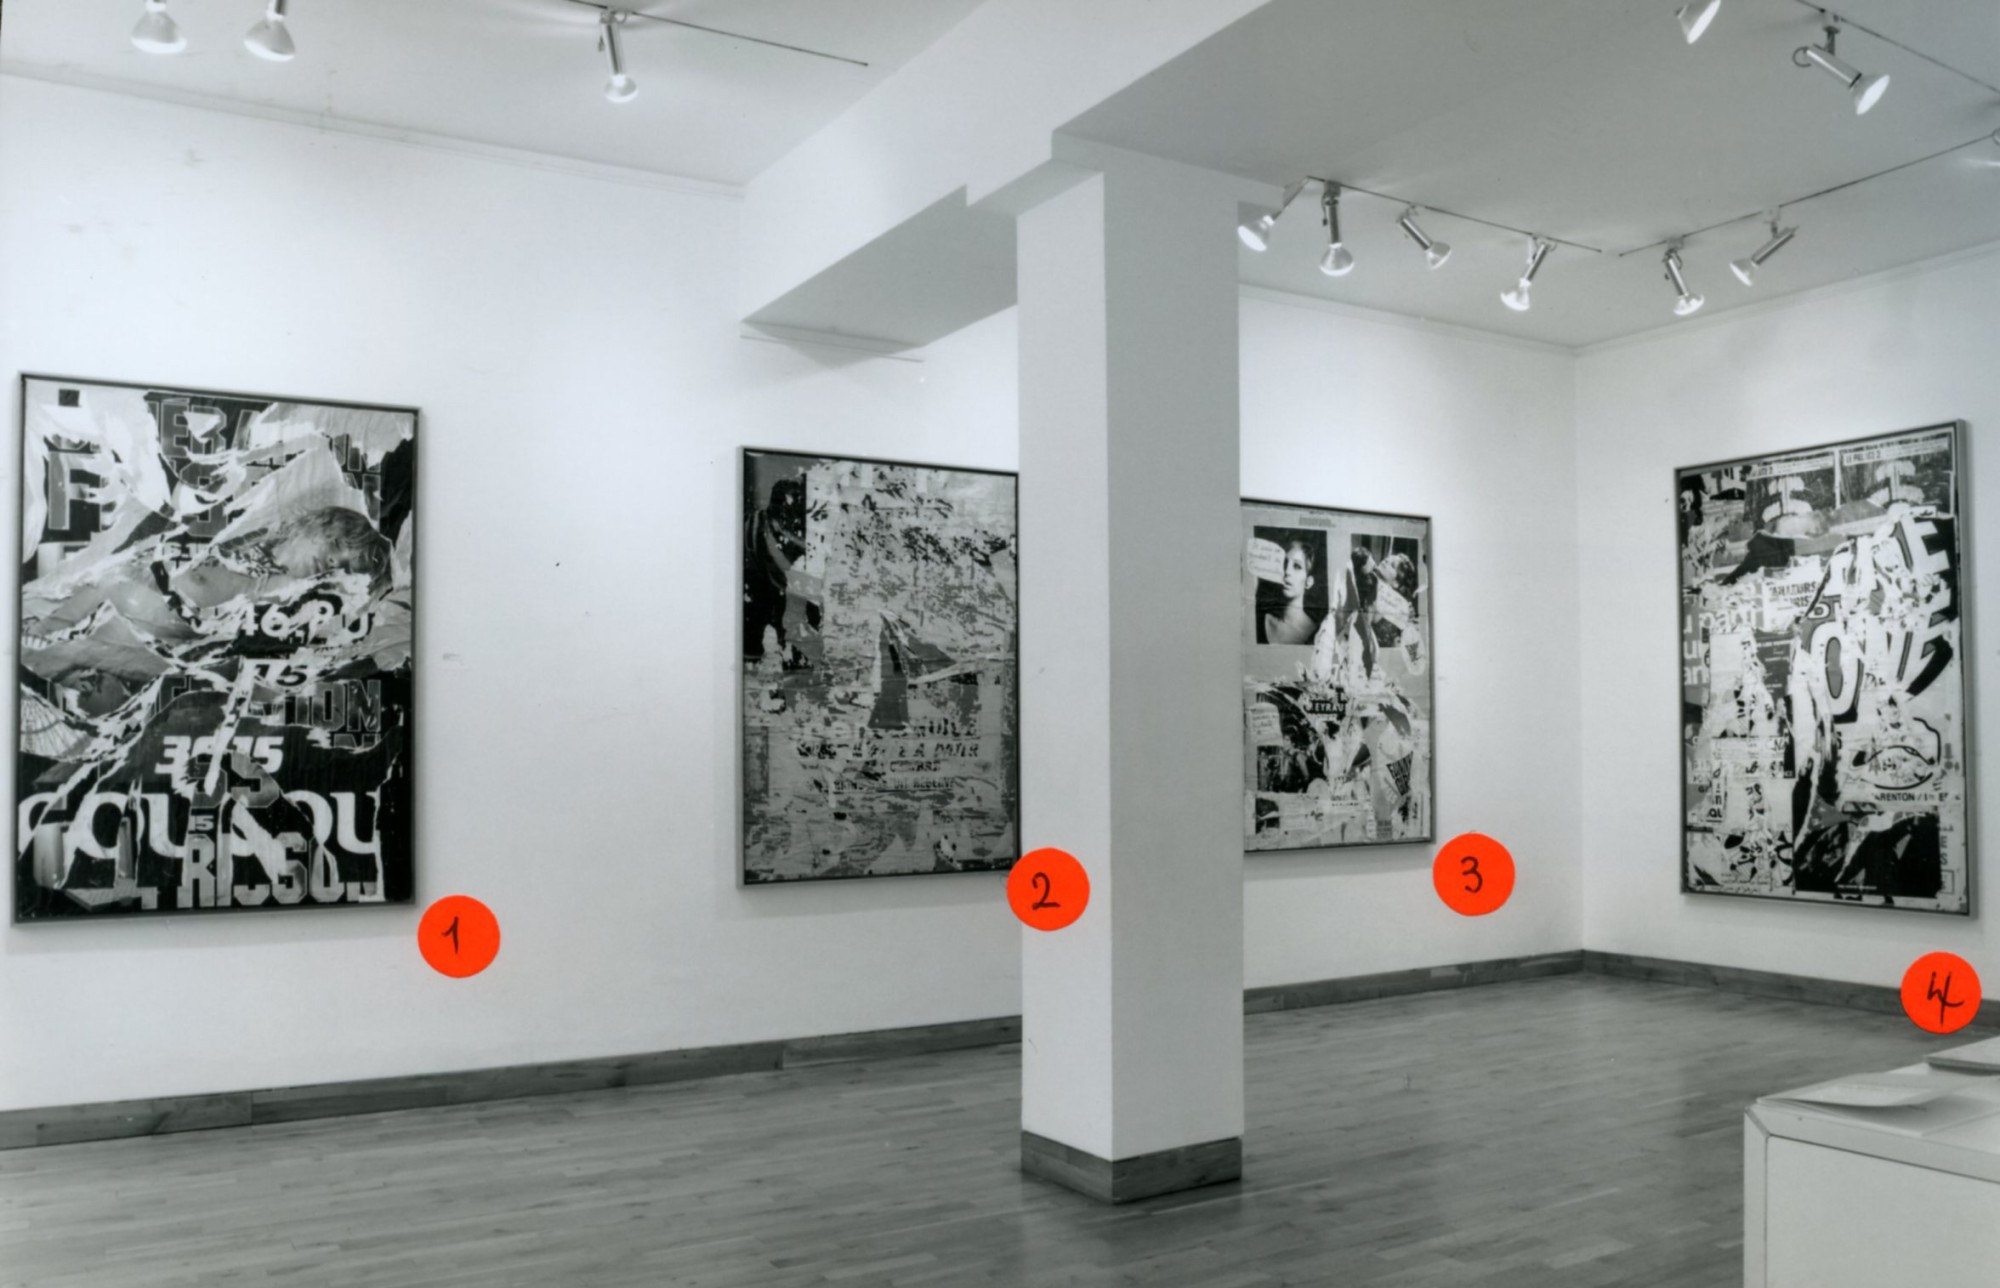 """<span class=""""link fancybox-details-link""""><a href=""""/exhibitions/147/works/image_standalone606/"""">View Detail Page</a></span><p>JACQUES VILLEGLE WORKS FROM 1955 - 1991 